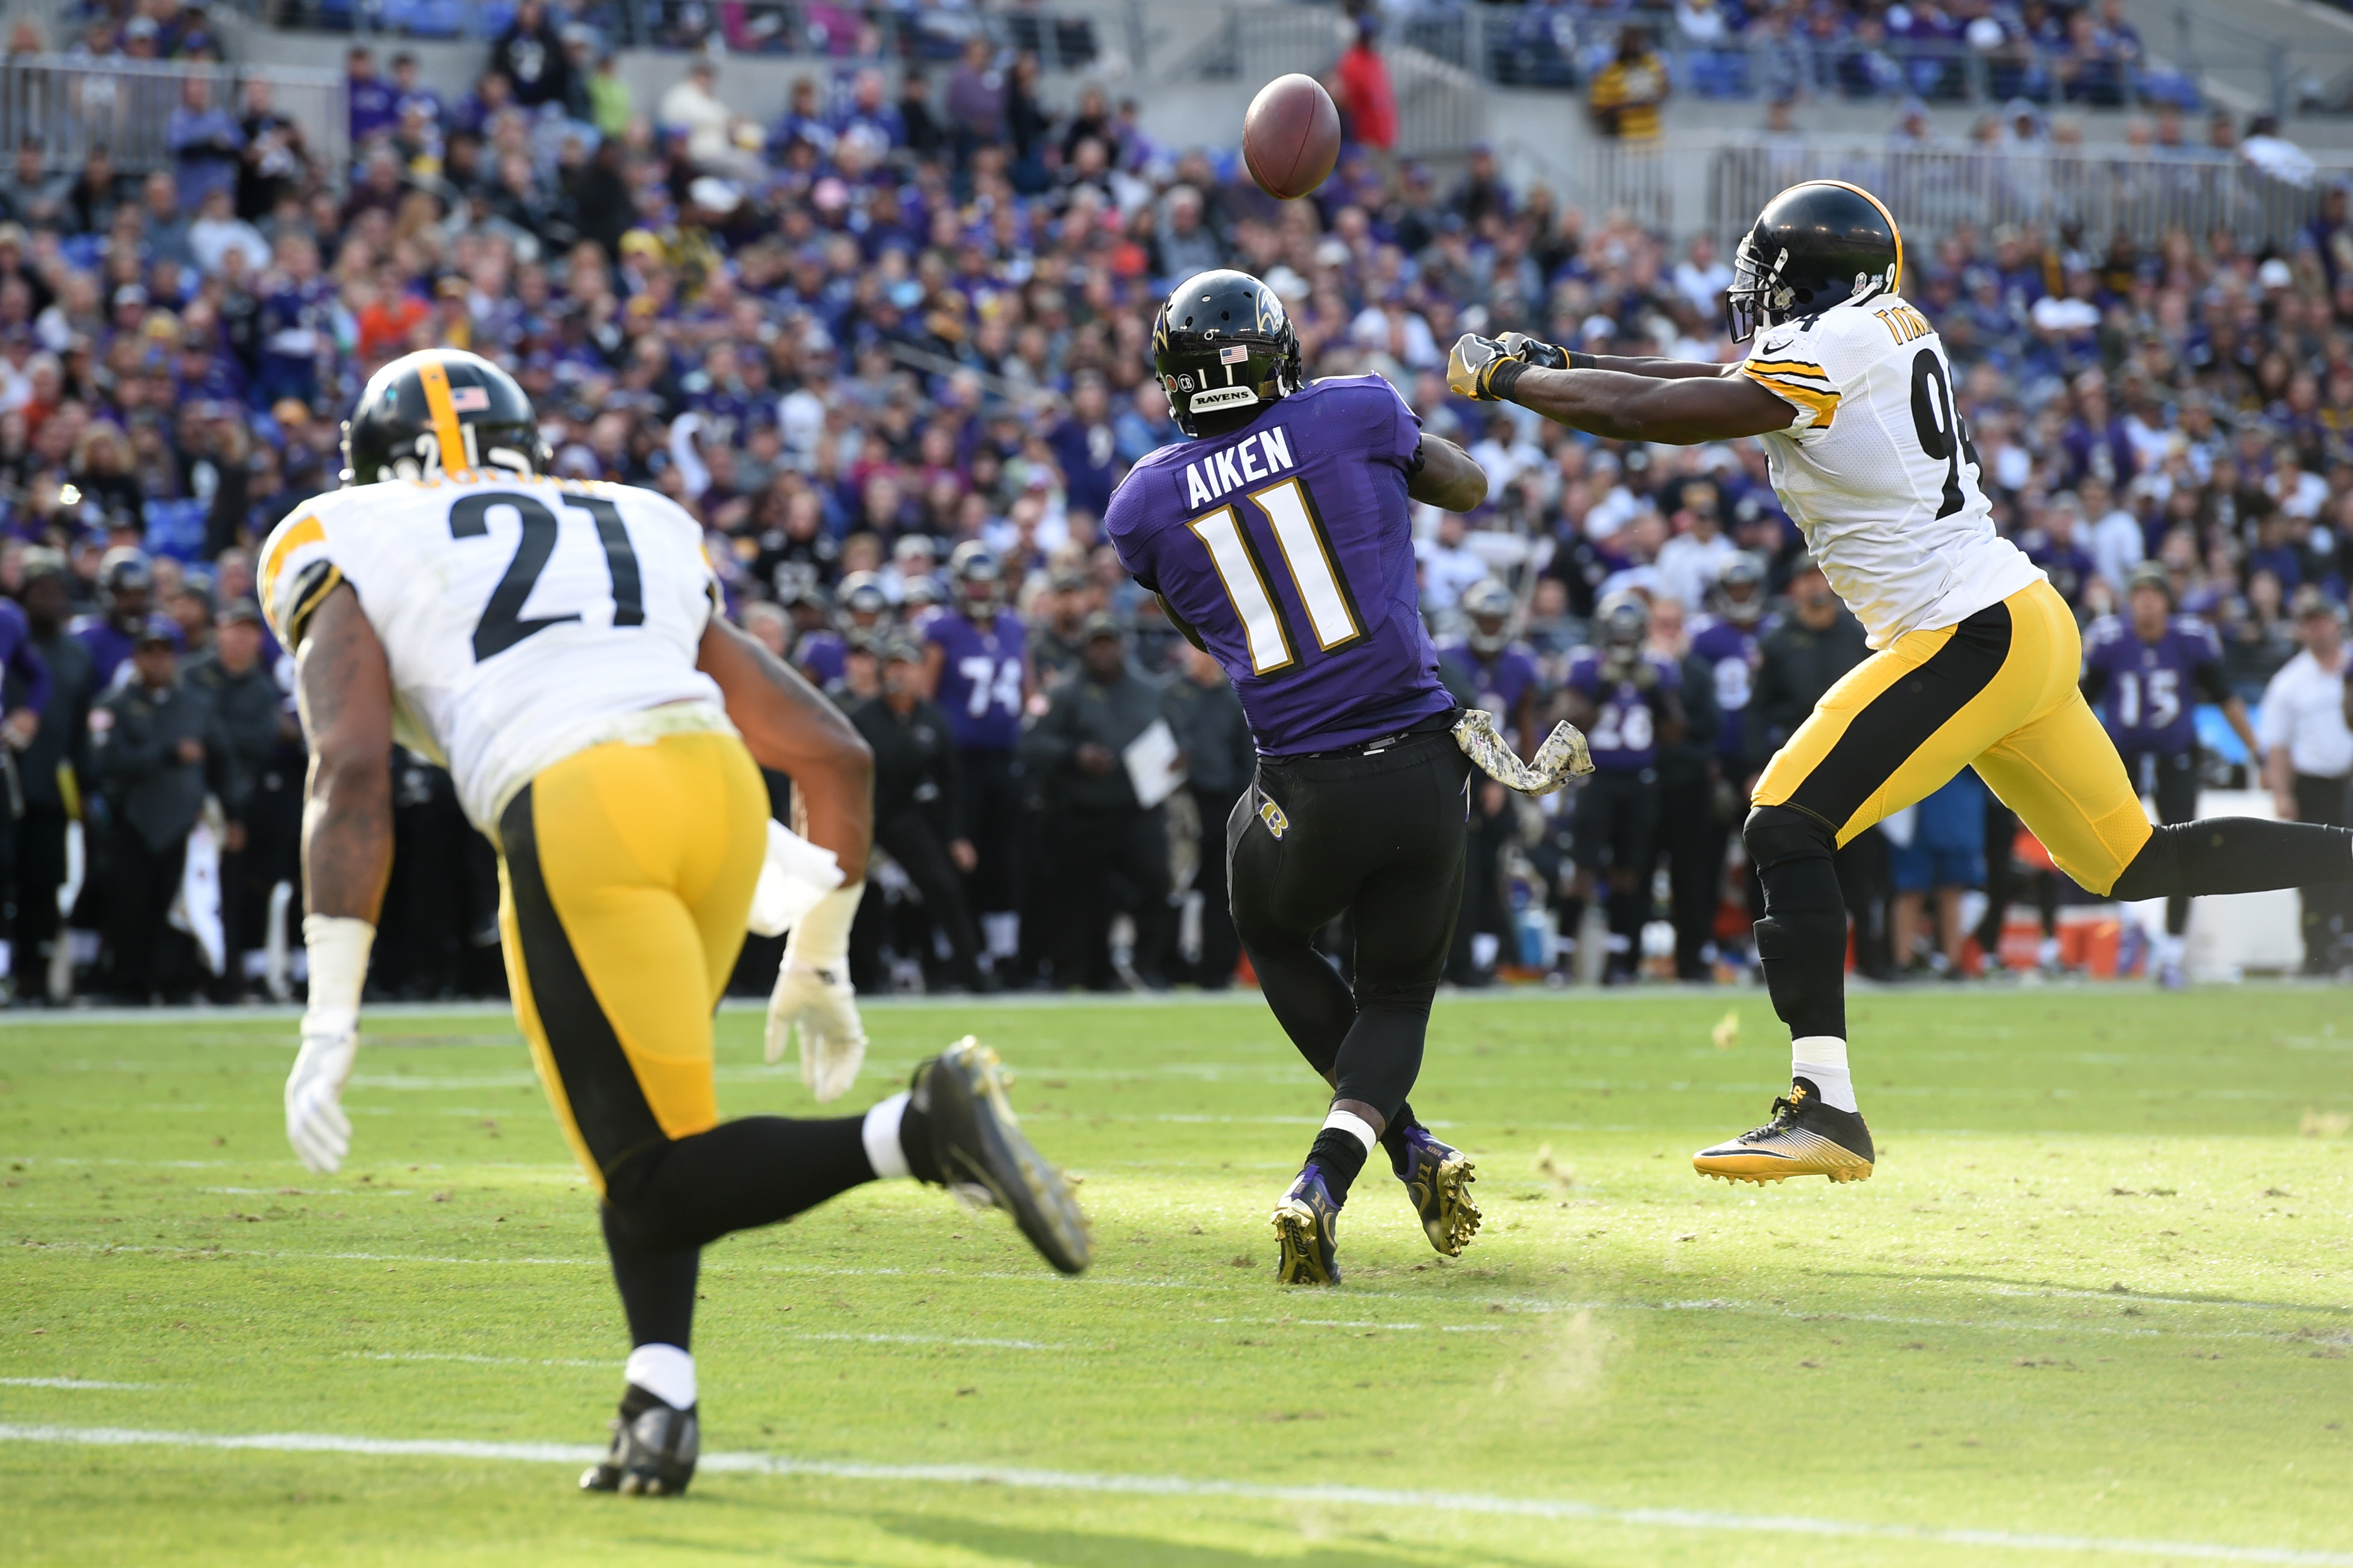 9658551-nfl-pittsburgh-steelers-at-baltimore-ravens